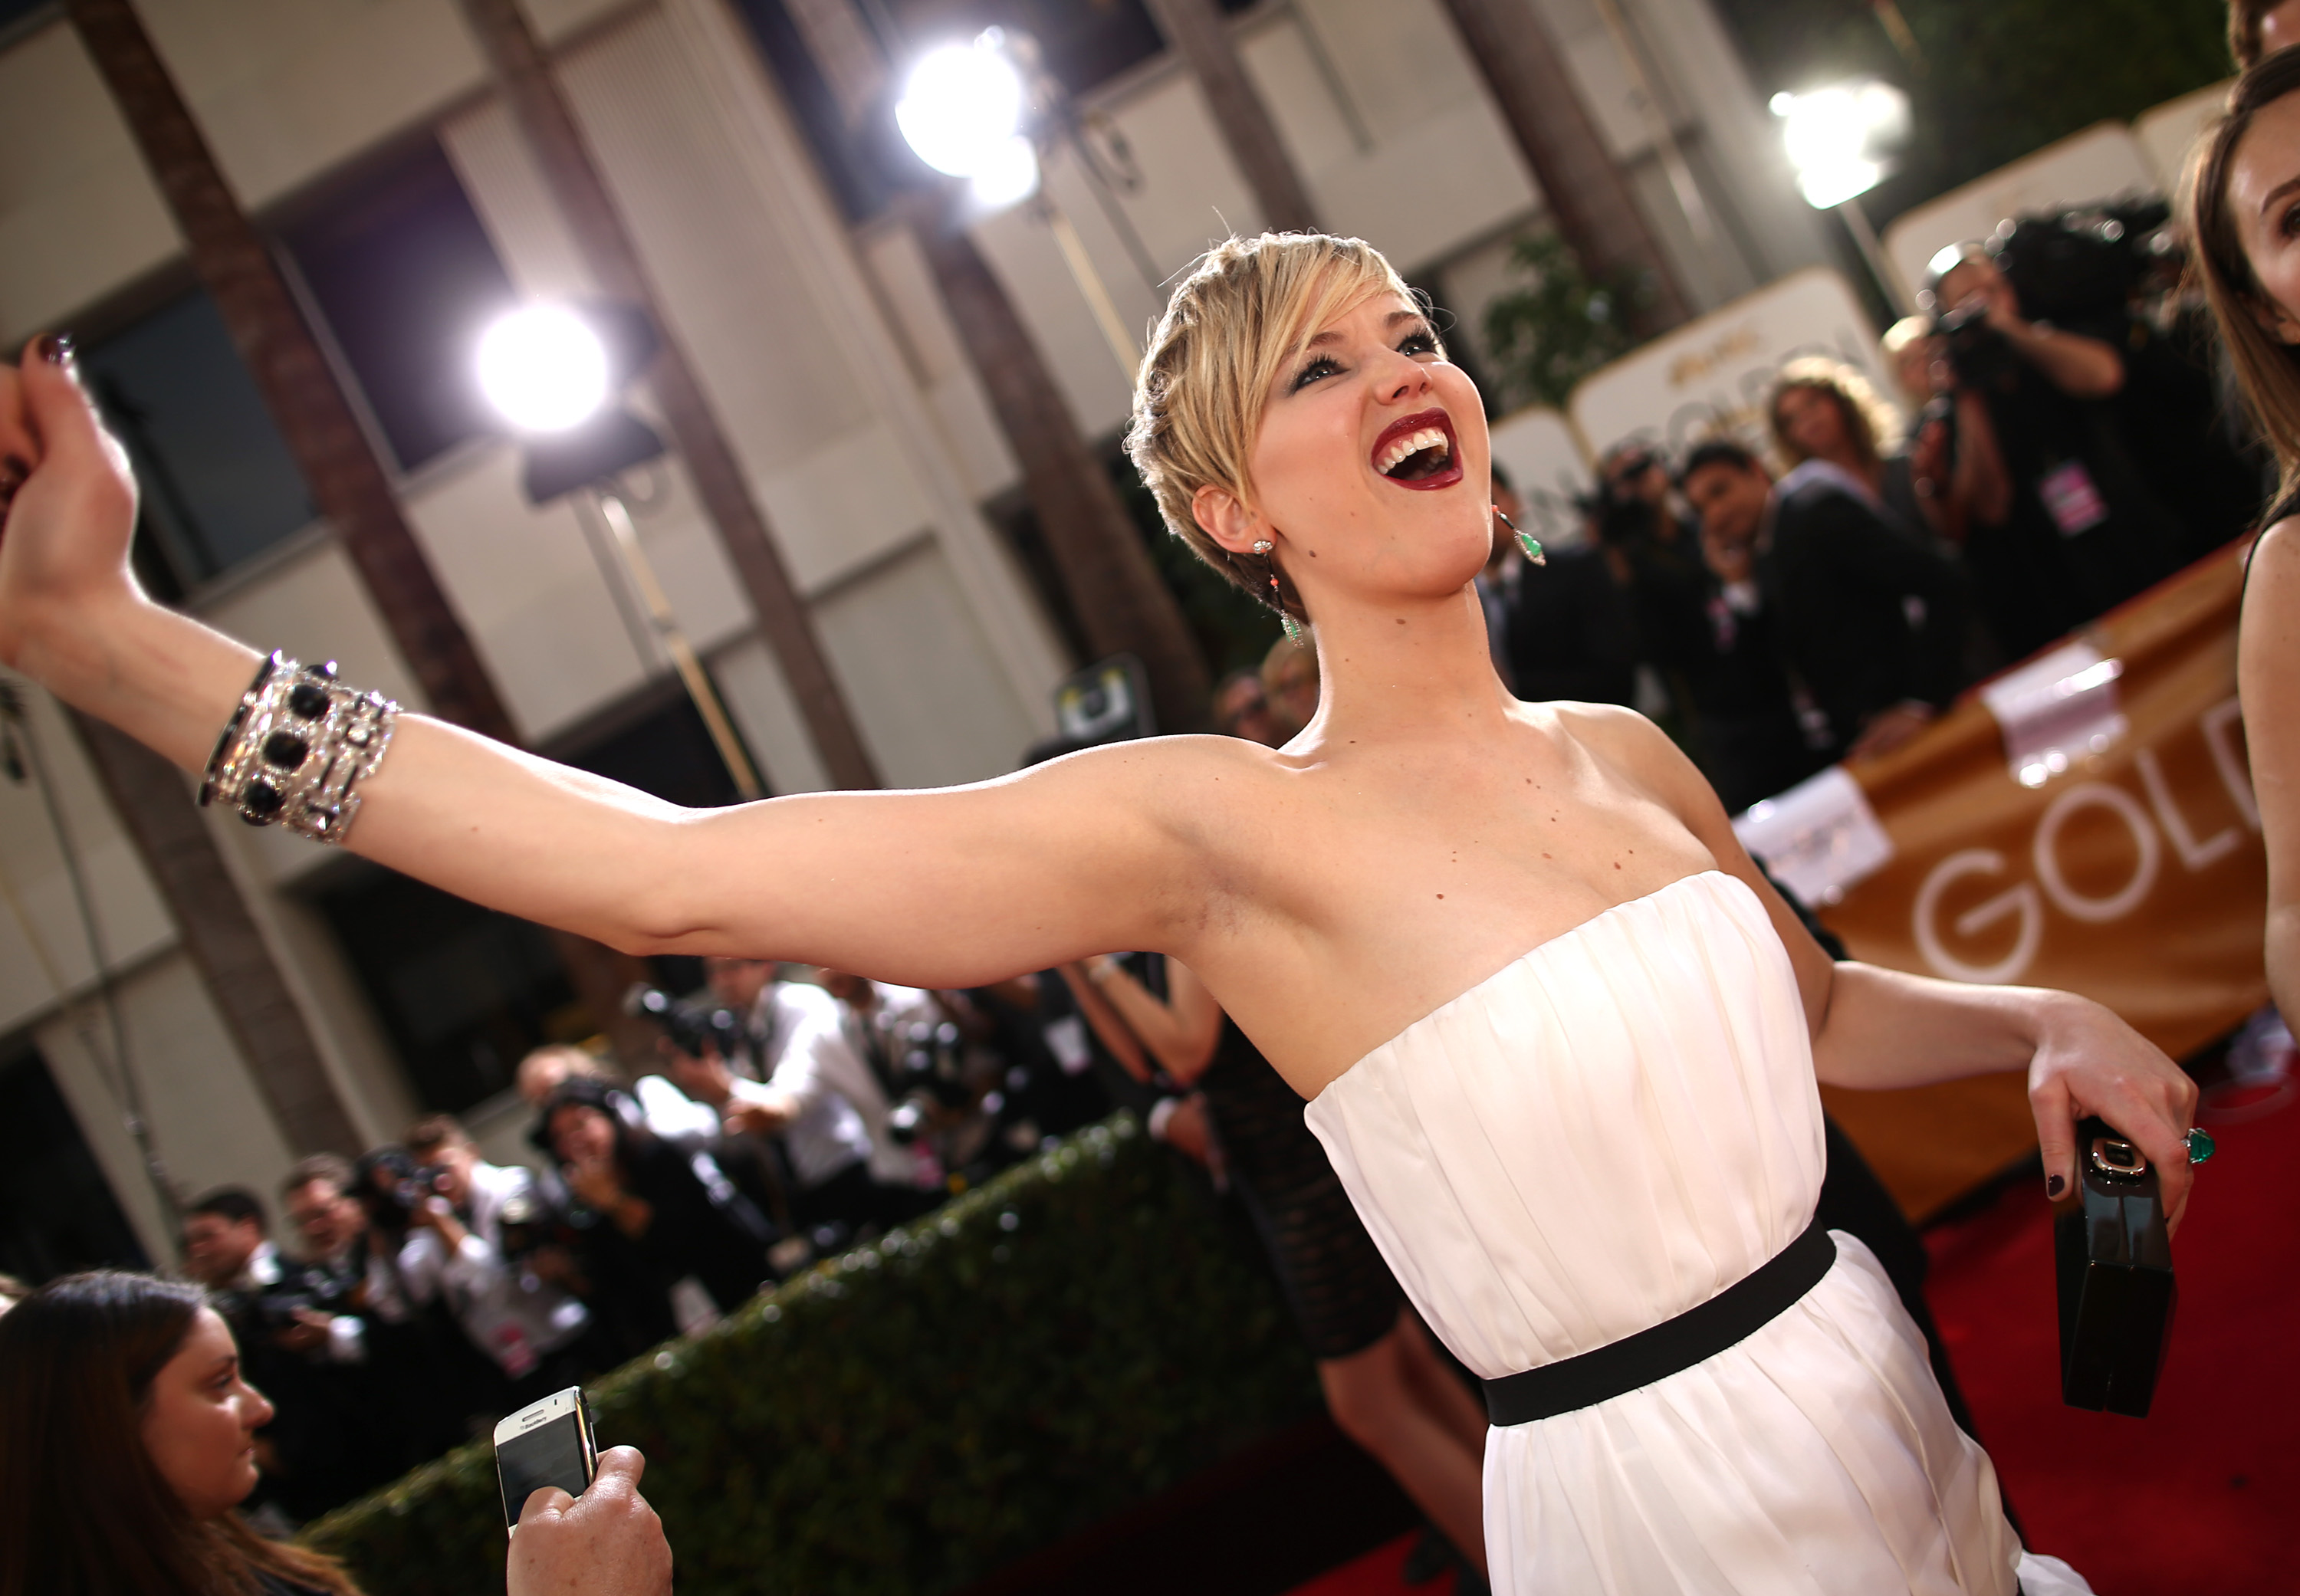 Jennifer Lawrence arrives to the 71st annual Golden Globe Awards on Jan. 12, 2014 in Los Angeles.